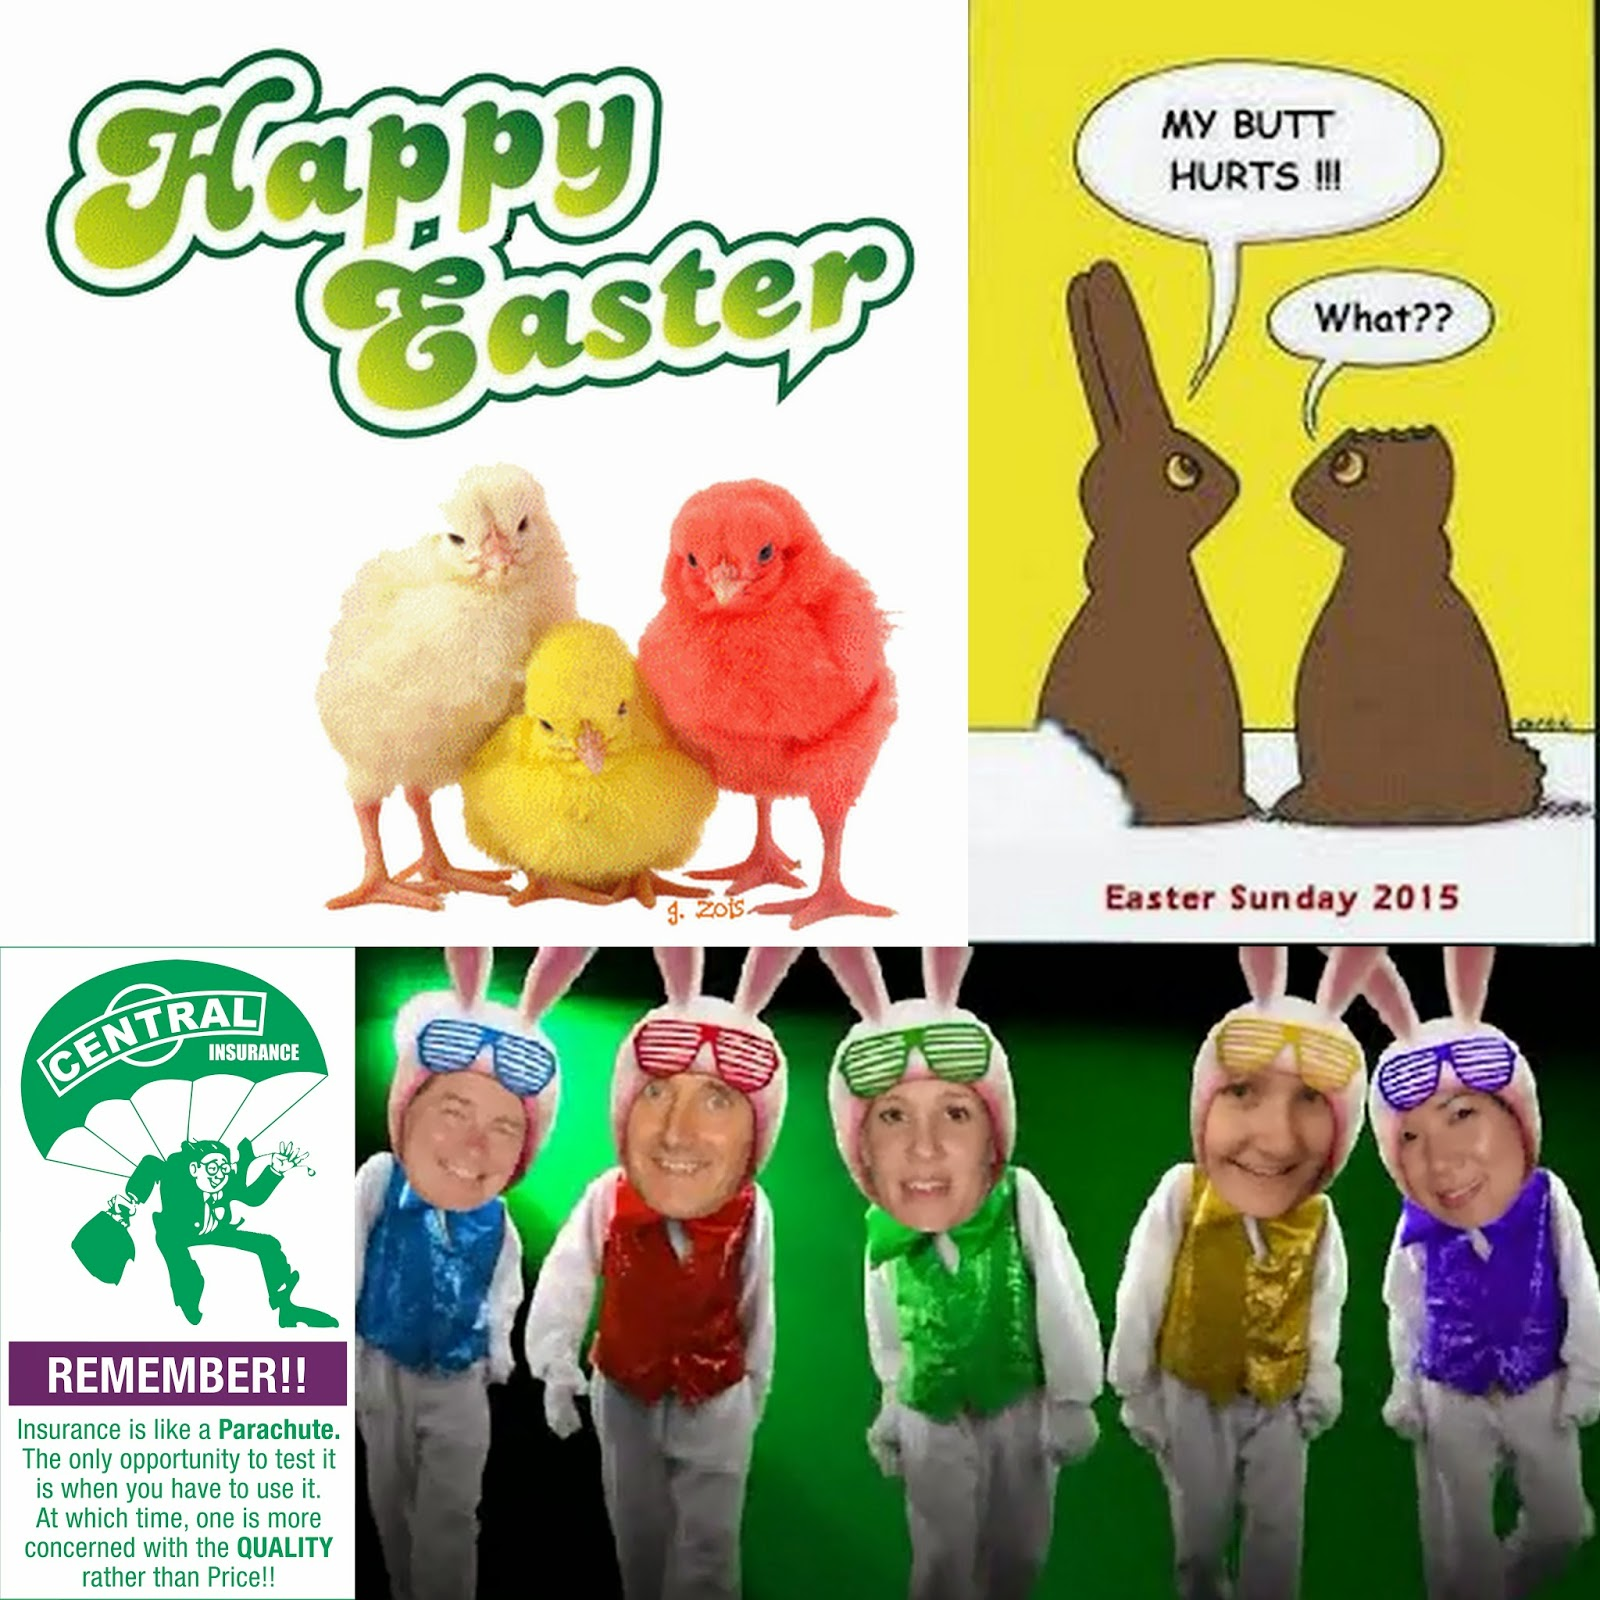 Insurance west australia have fun celebrating easter 2015 various symbols are associated with easter christian symbols include crosses jesus empty tomb and the white and gold vestments robes worn by priests biocorpaavc